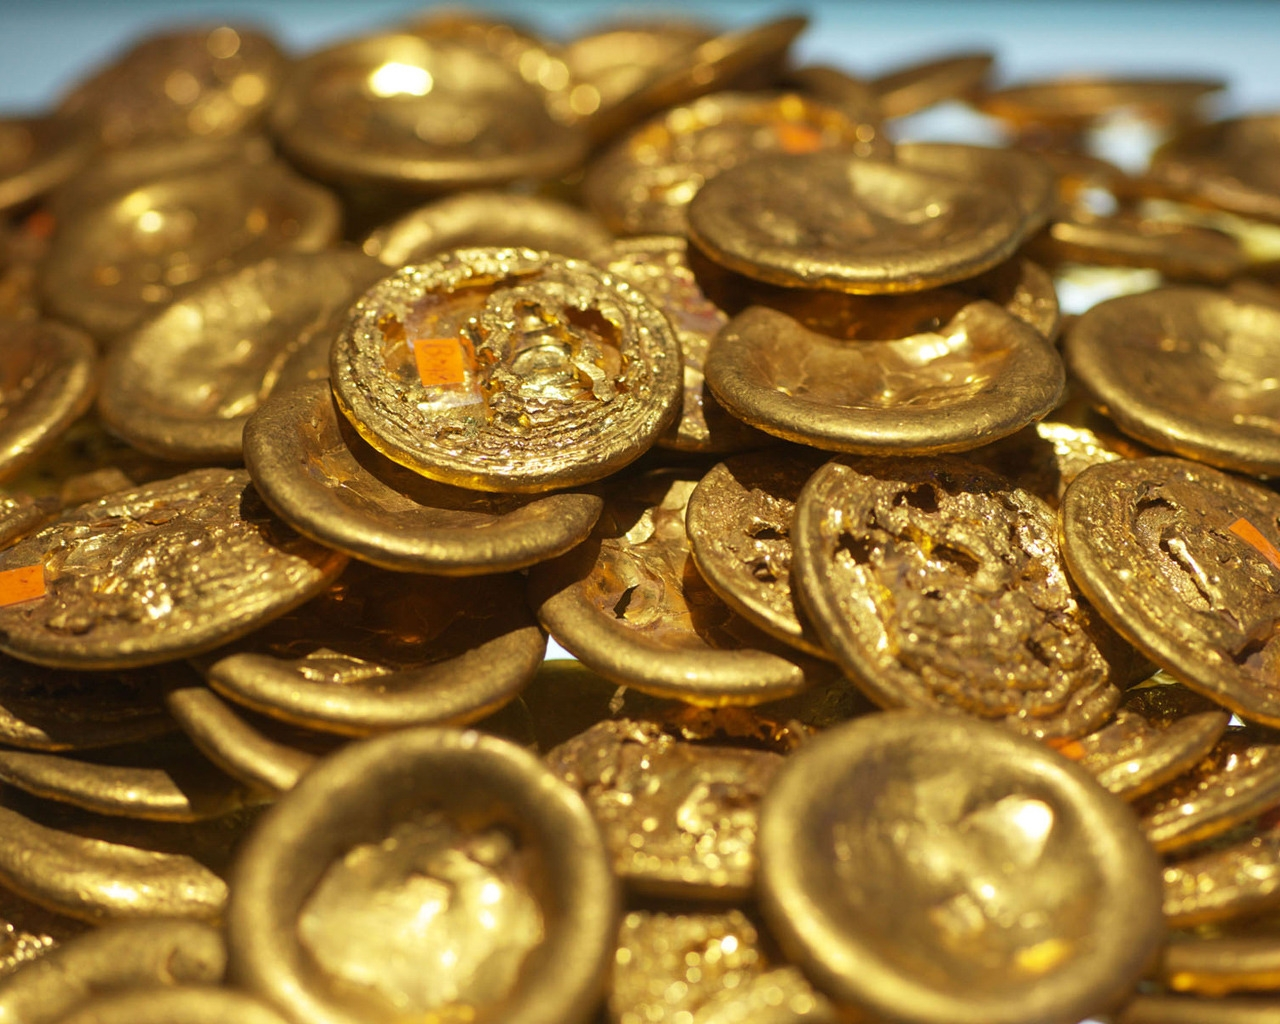 Old Chinese Gold Coins for 1280 x 1024 resolution